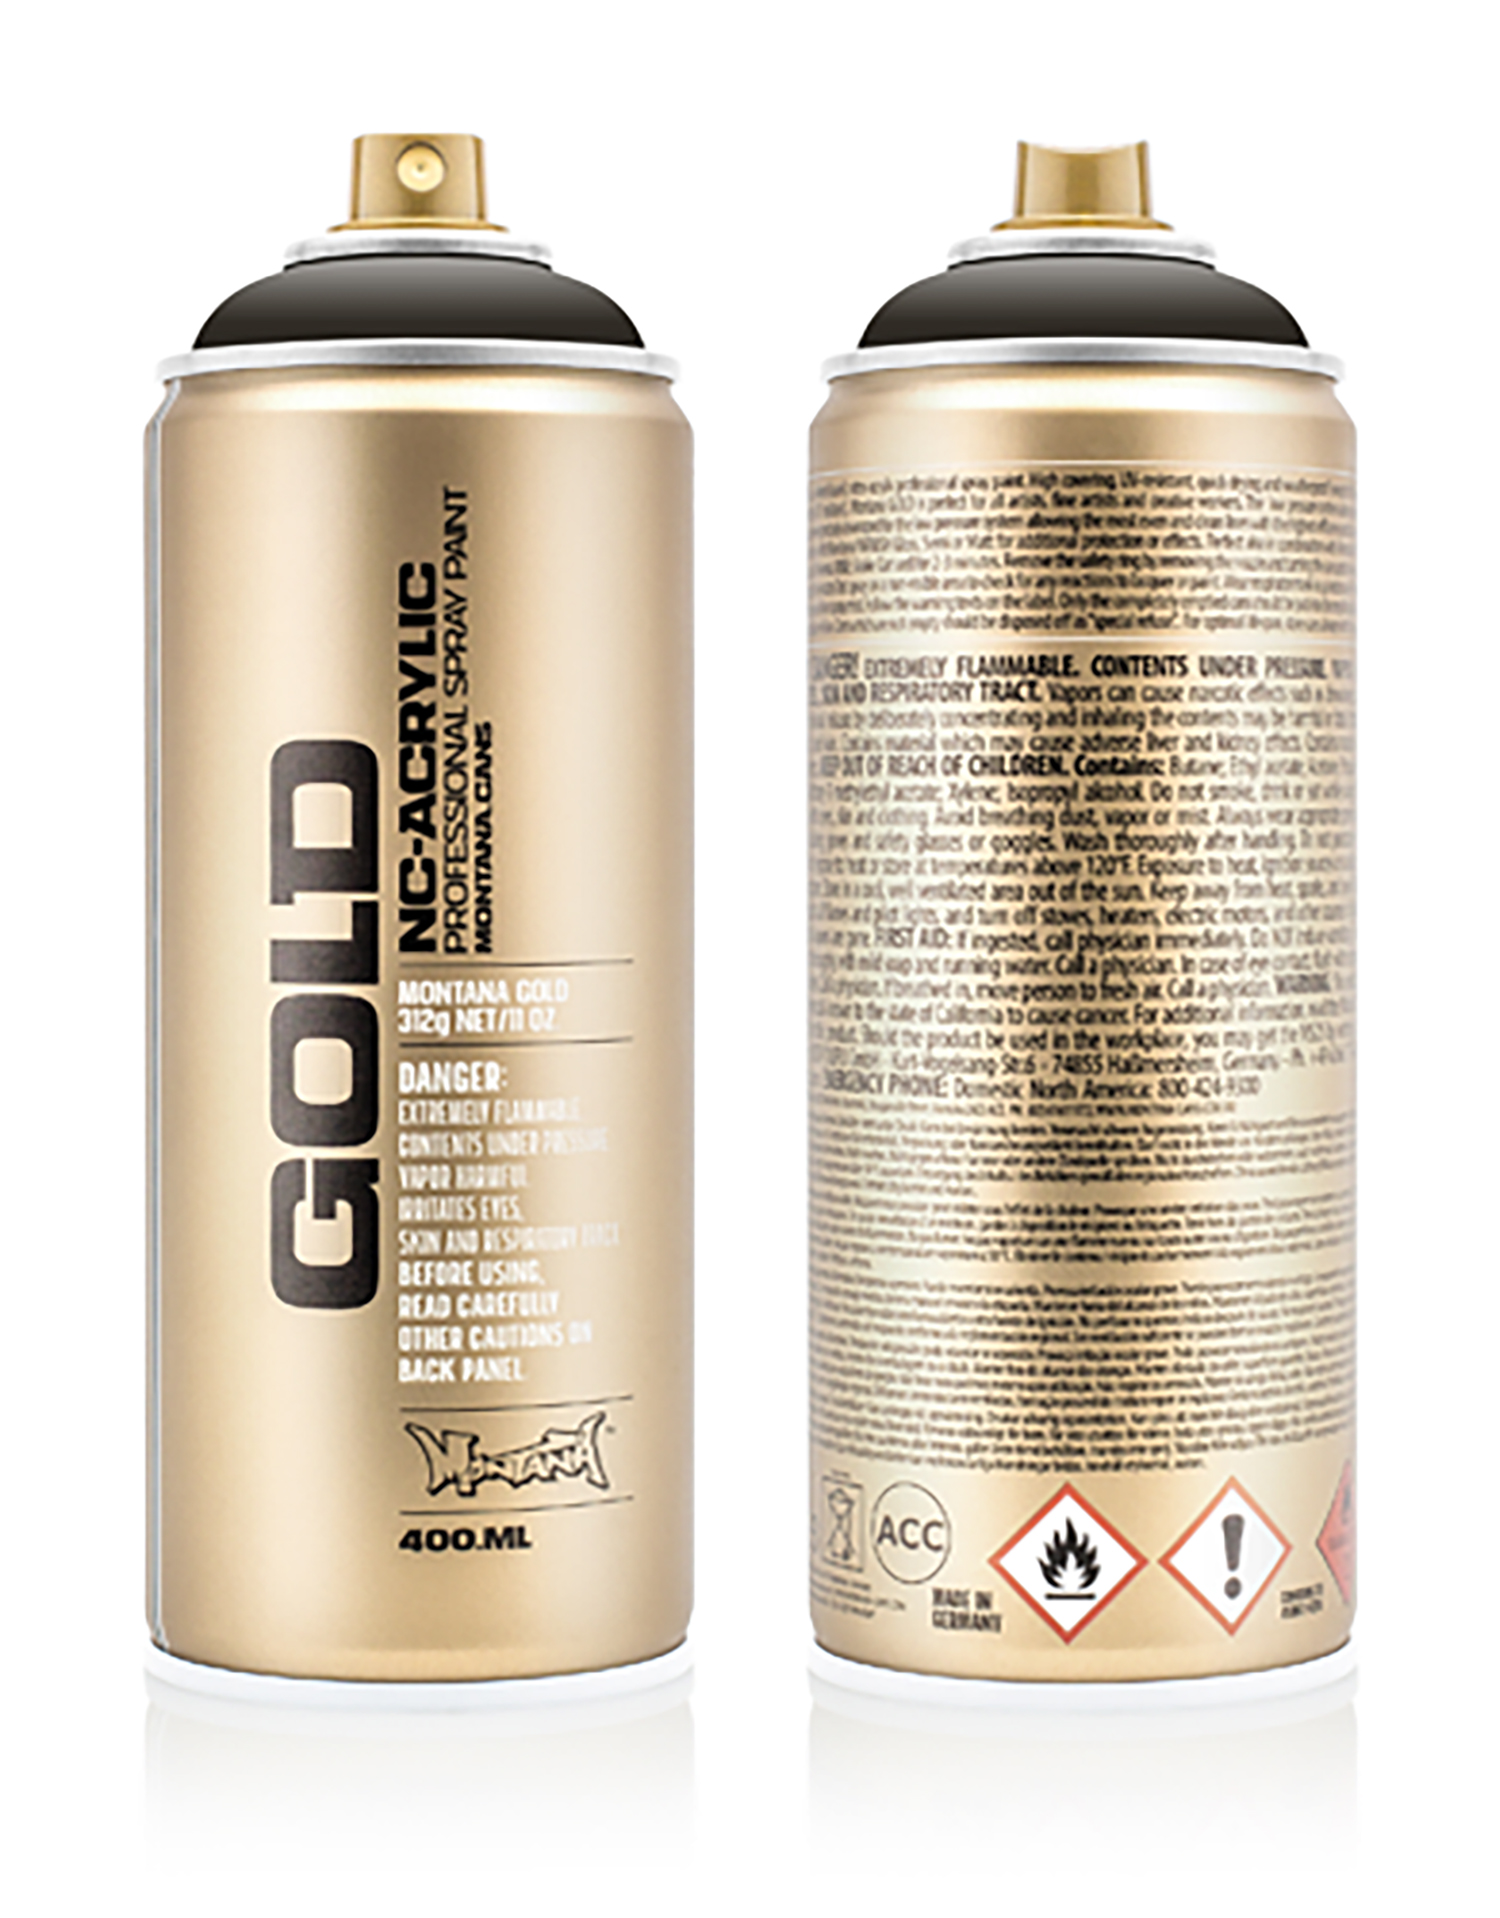 MONTANA-GOLD-SPRAY-400ML-G-8150